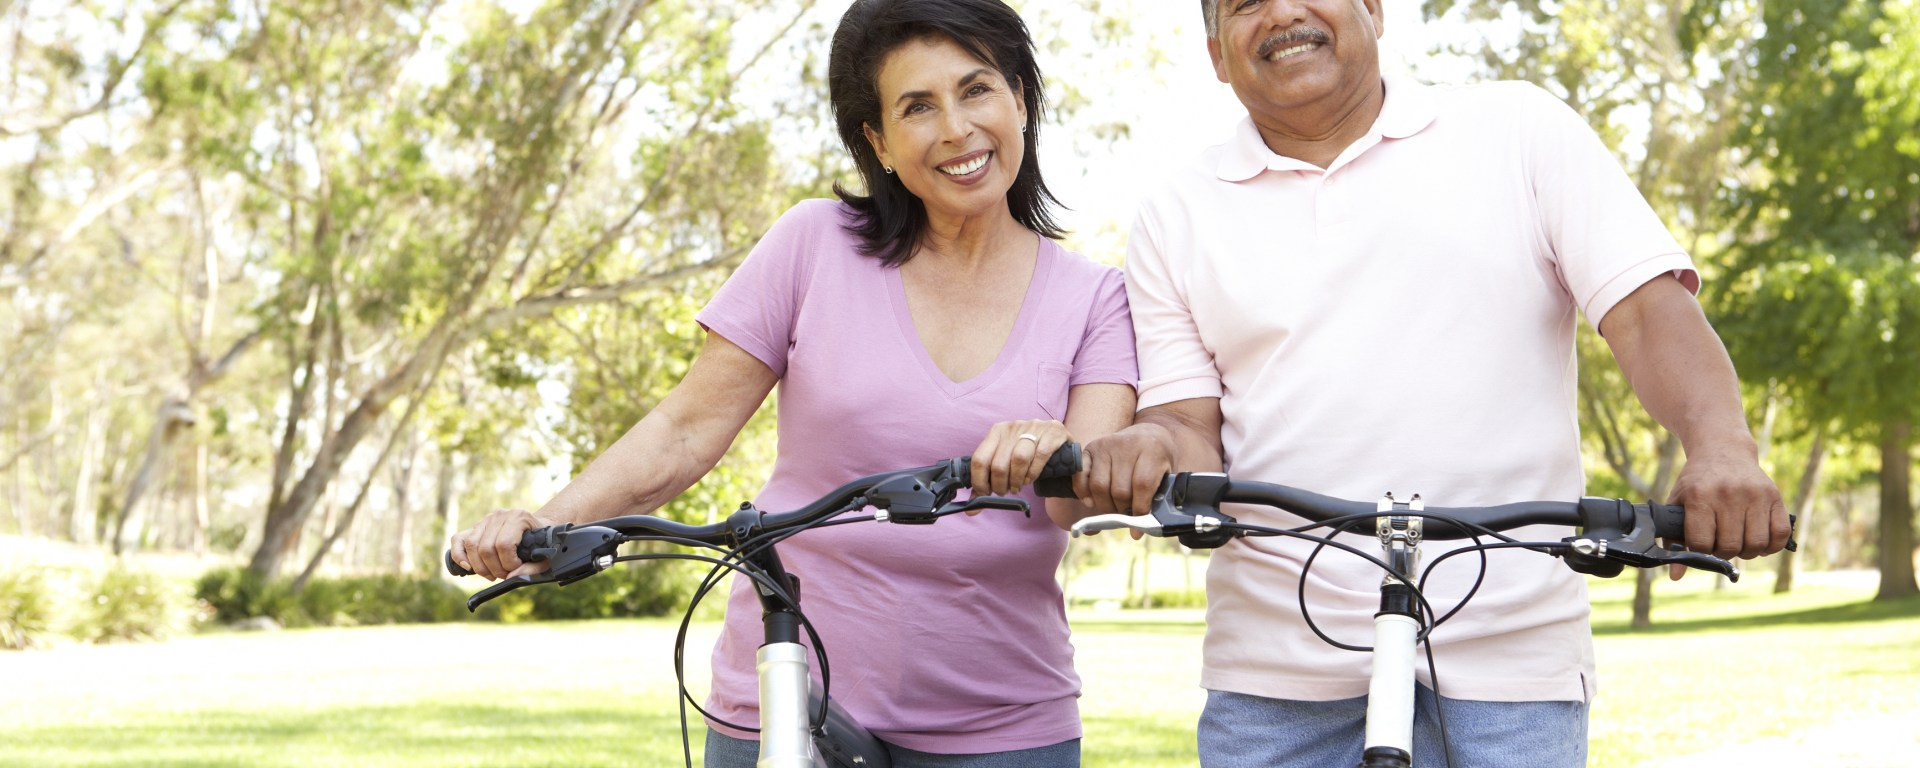 A couple riding bicycles.